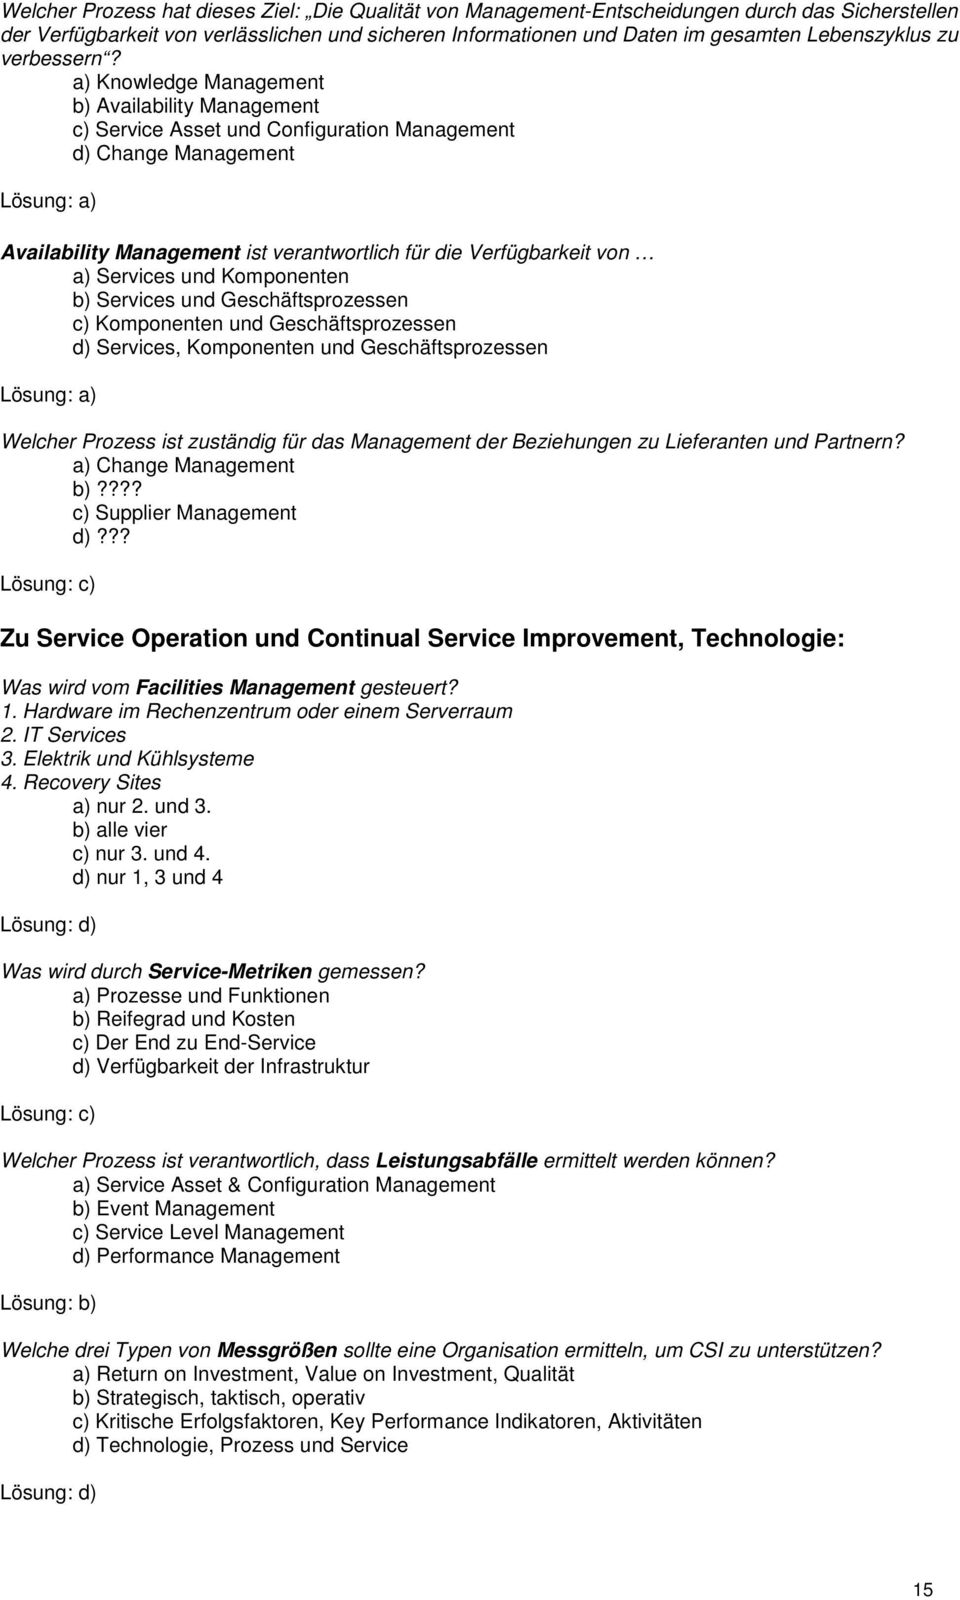 a) Knowledge Management b) Availability Management c) Service Asset und Configuration Management d) Change Management Availability Management ist verantwortlich für die Verfügbarkeit von a) Services